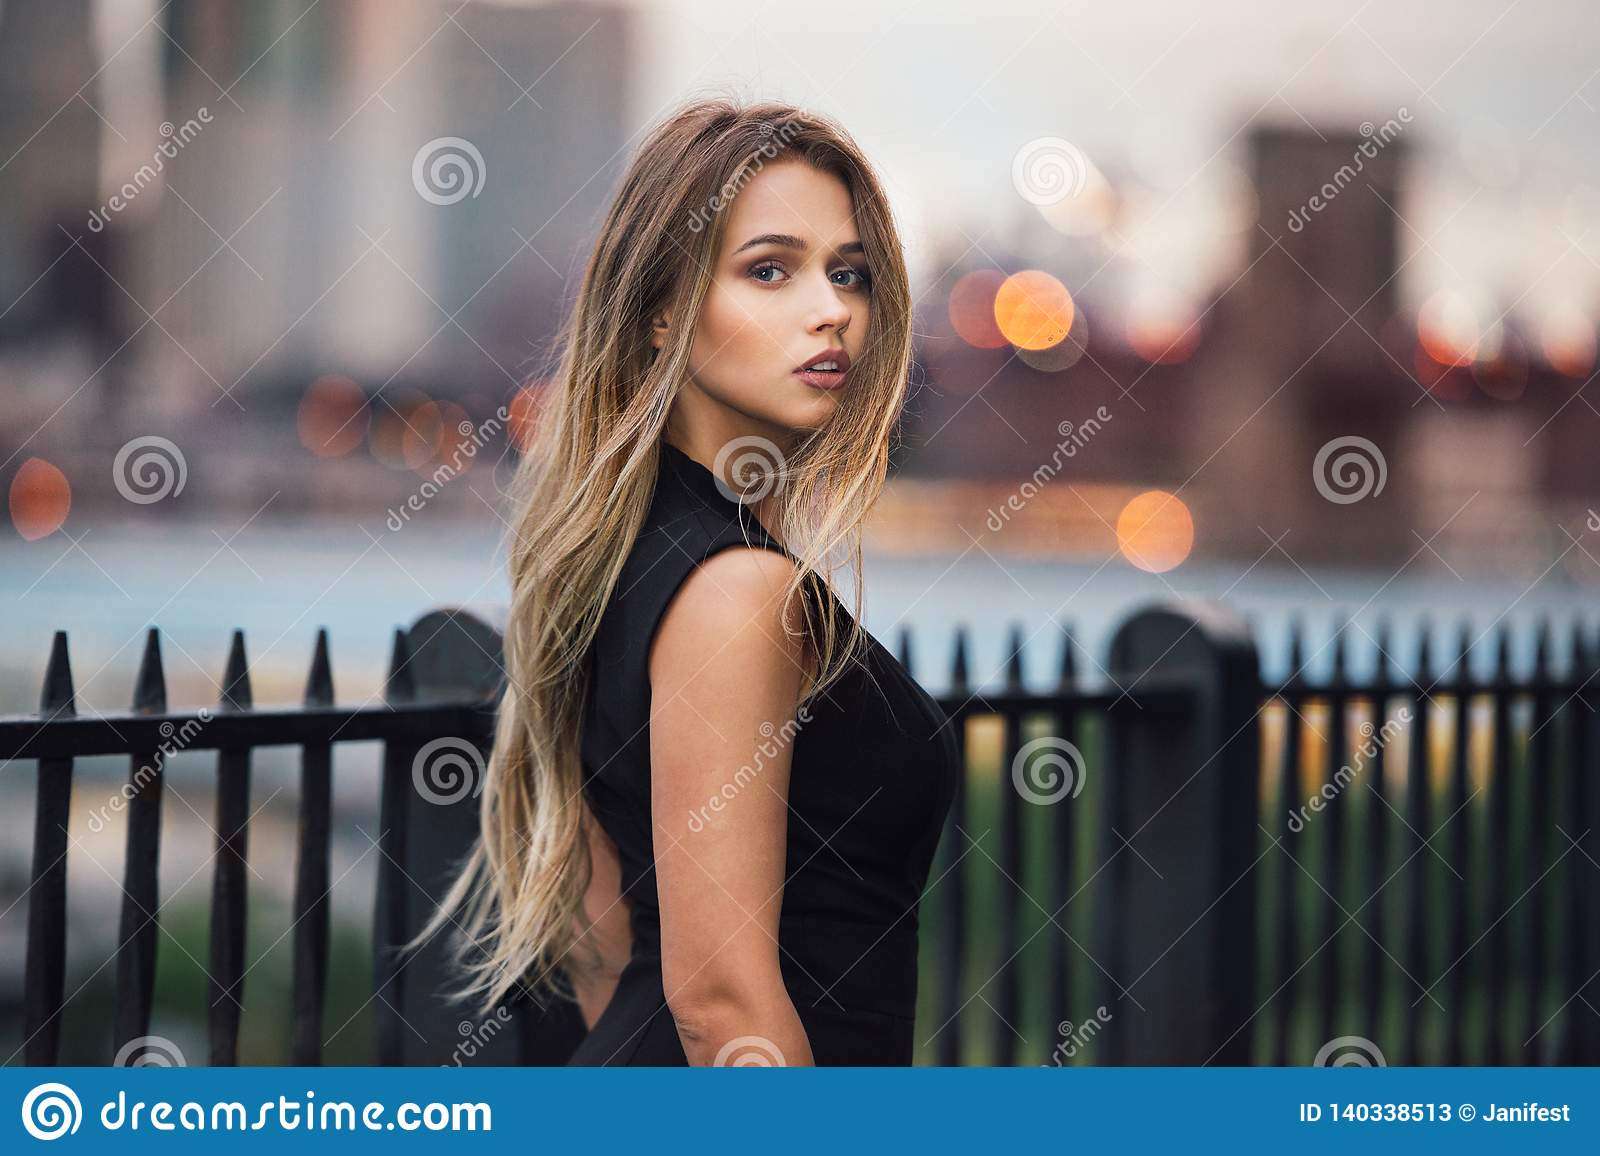 Beautiful woman with long blond hair walking in the city at evening time wearing elegant black dress.